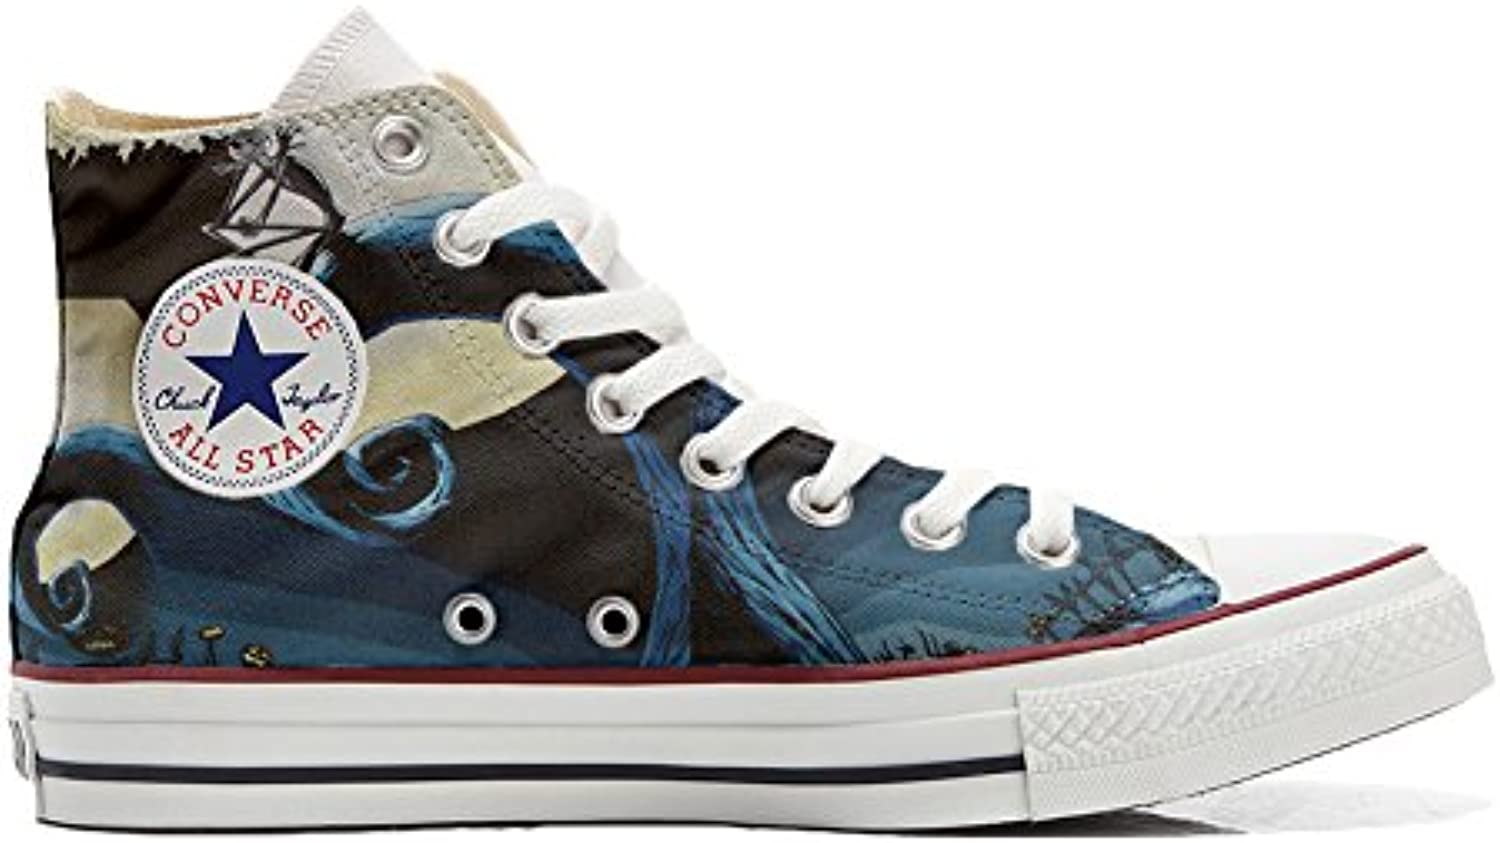 Converse All Star Customized Unisex   Personalisierte Schuhe (Handwerk Produkt) Abstract Art